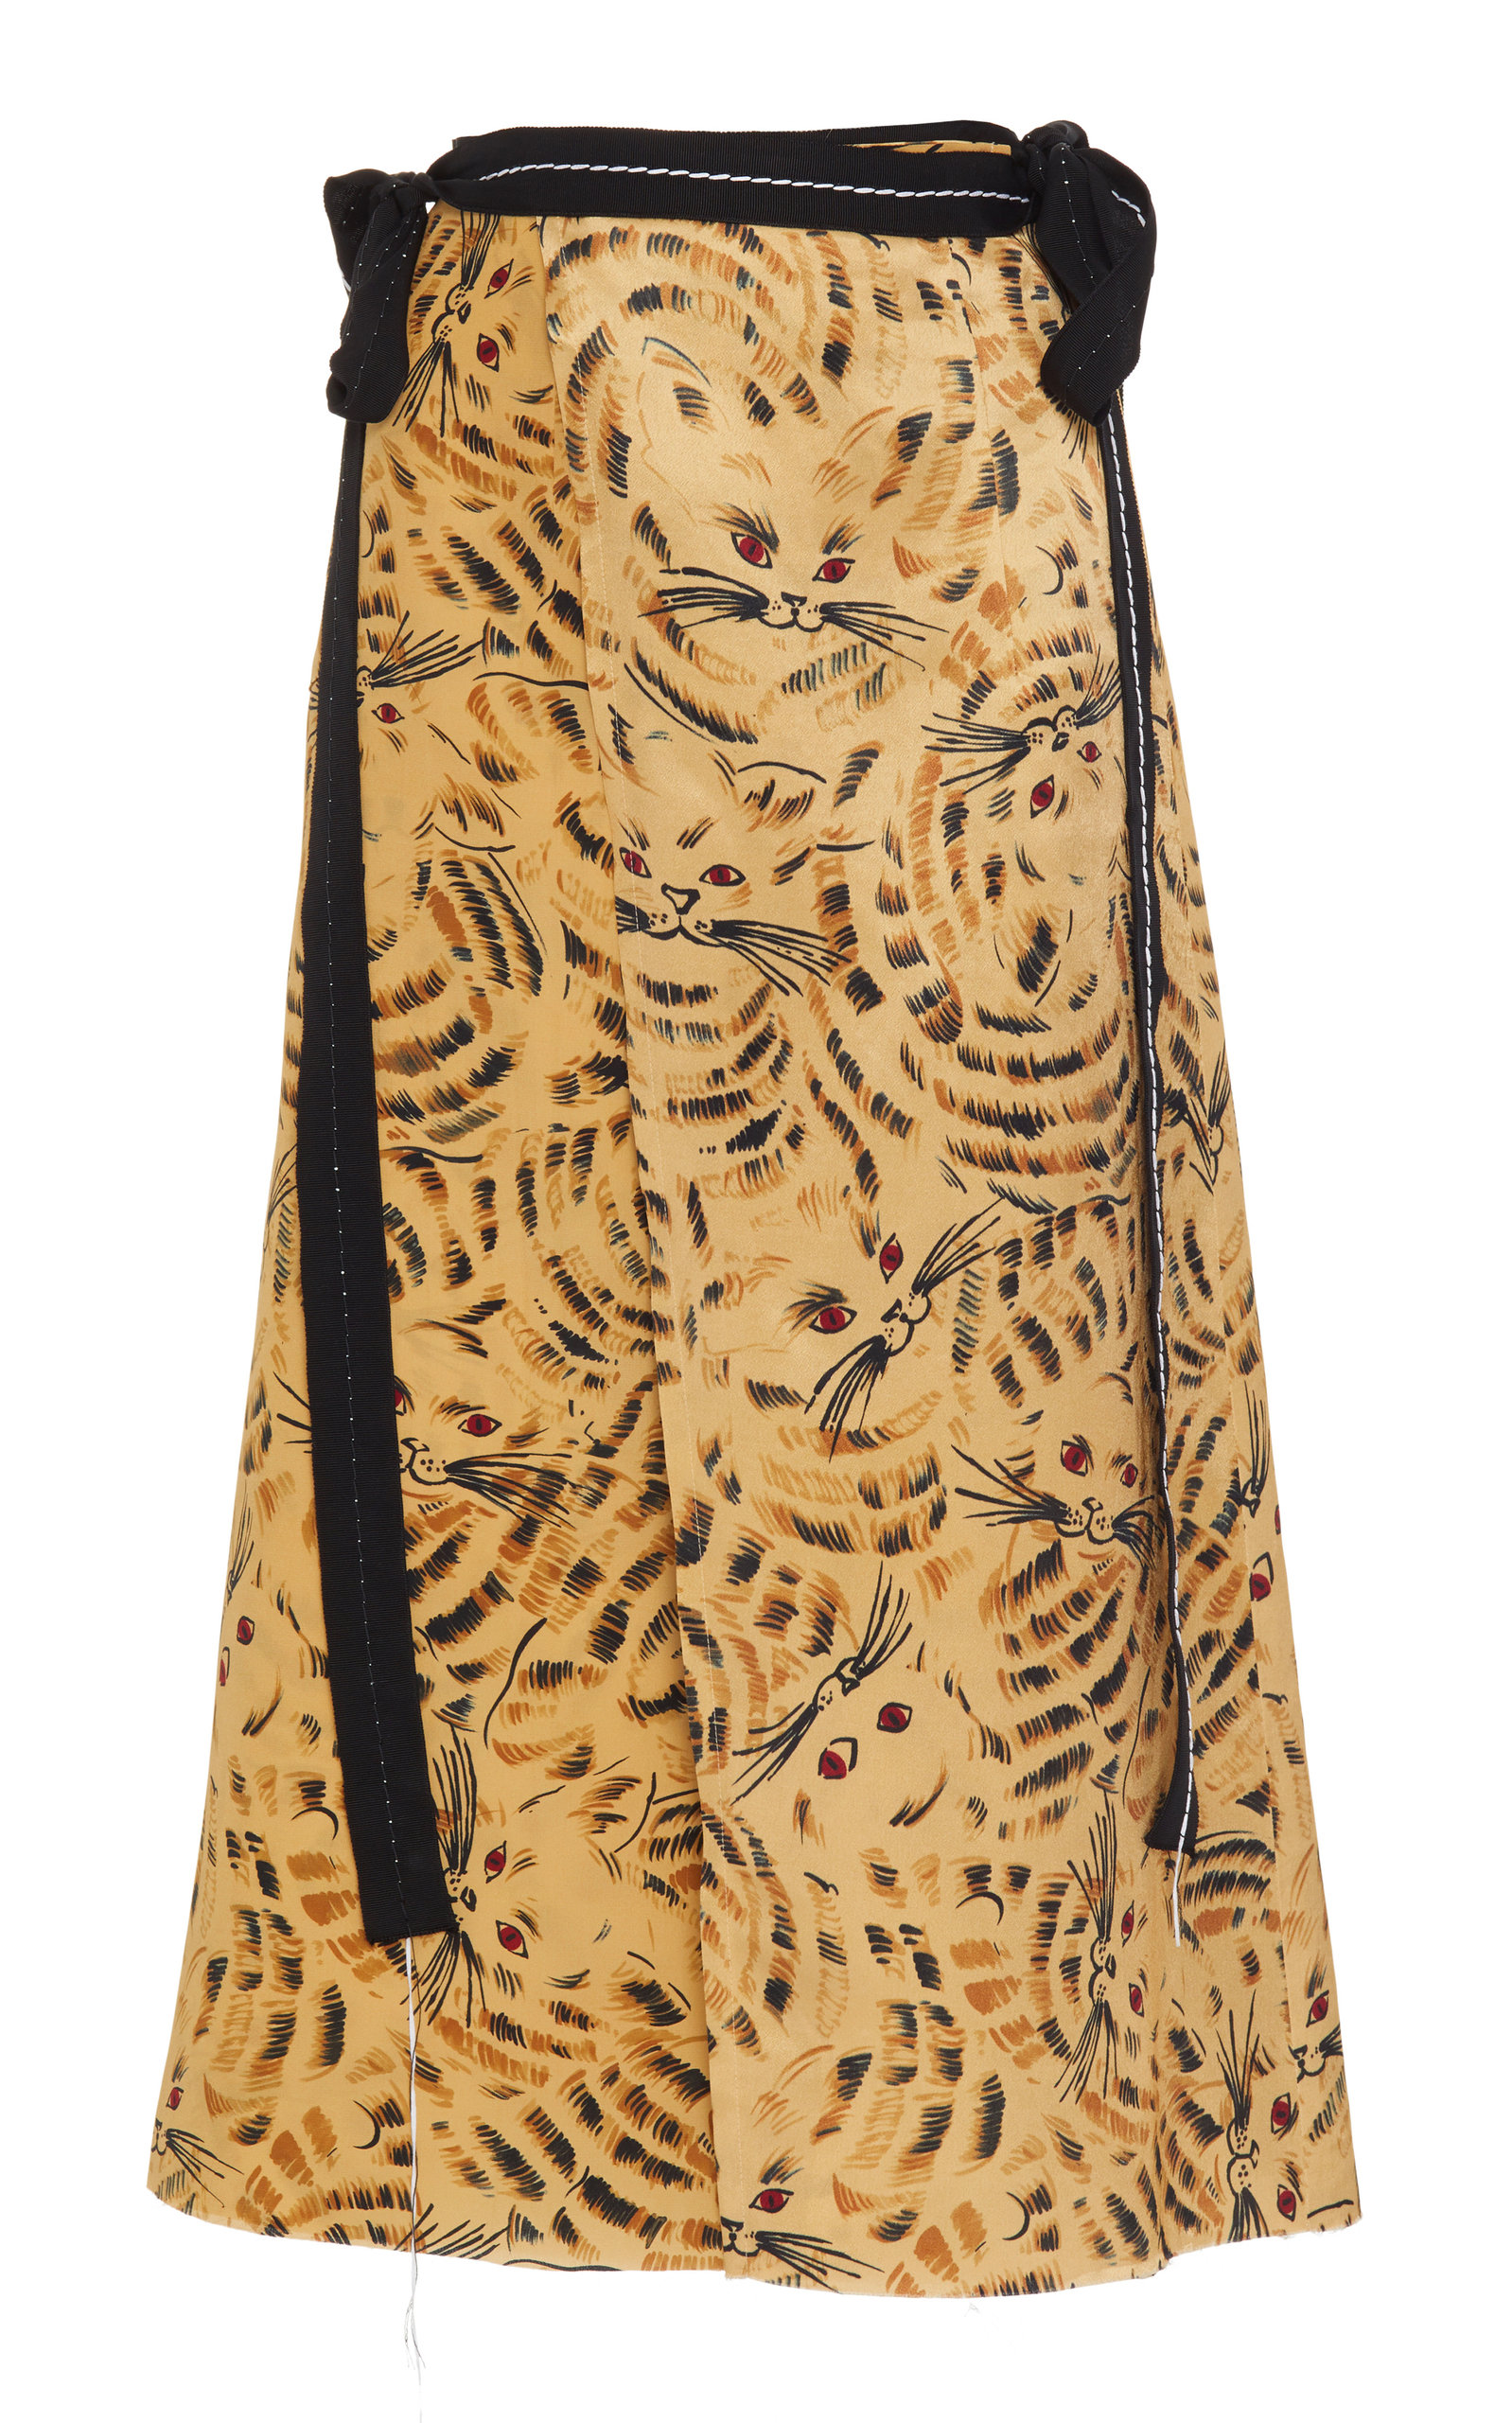 Pay With Visa For Sale Hot Sale Joe Printed Satin Midi Skirt Marni 100% Authentic For Sale Aberdeen f1GWMJ